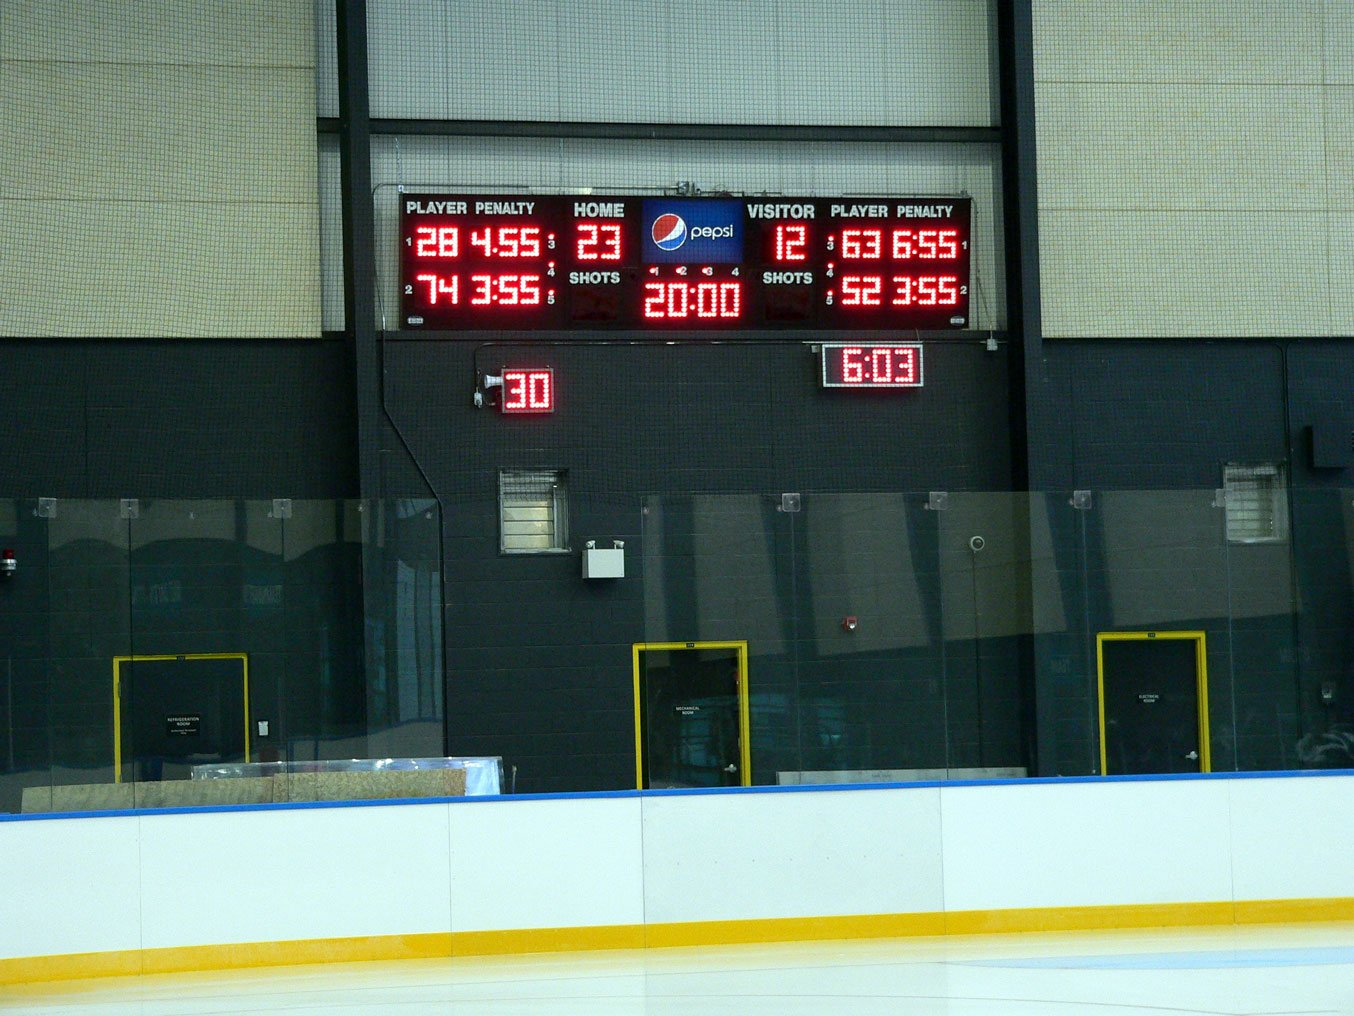 Harris Time scoreboard